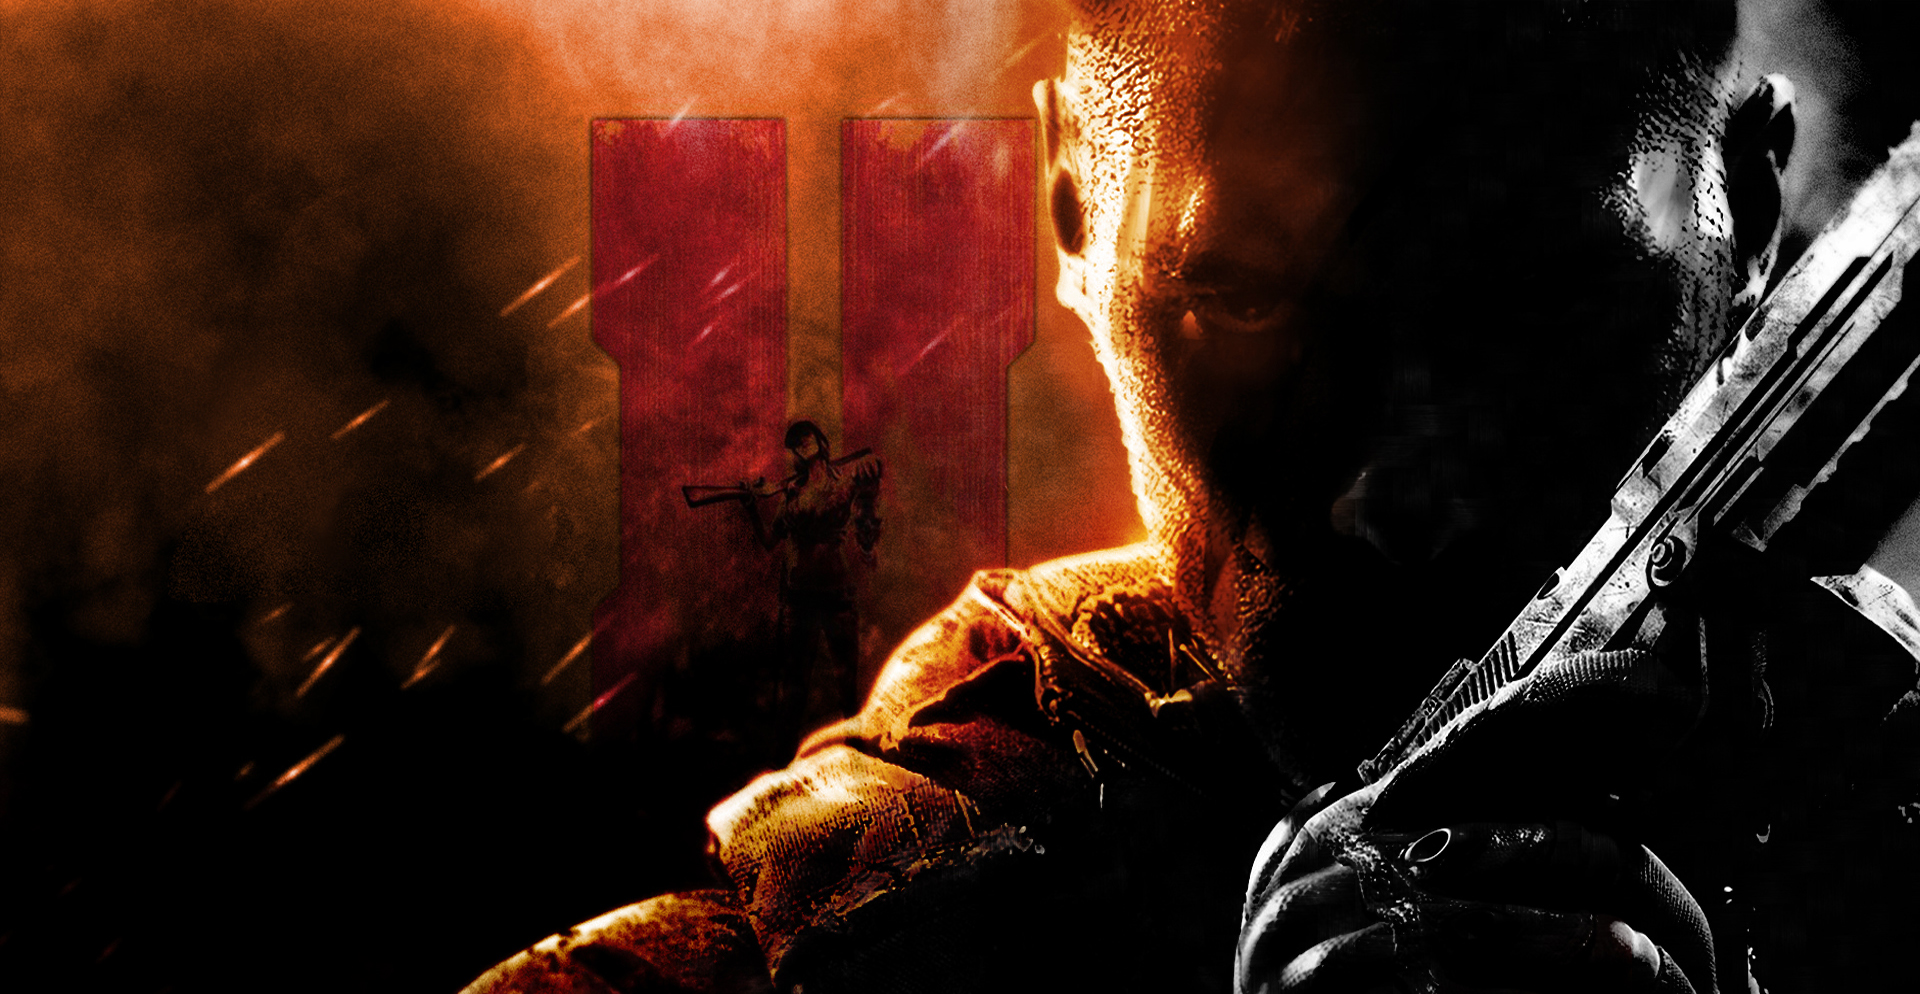 Call of Duty: Black Ops II Wallpaper and Background Image | 1920x994 | ID:447008 - Wallpaper Abyss